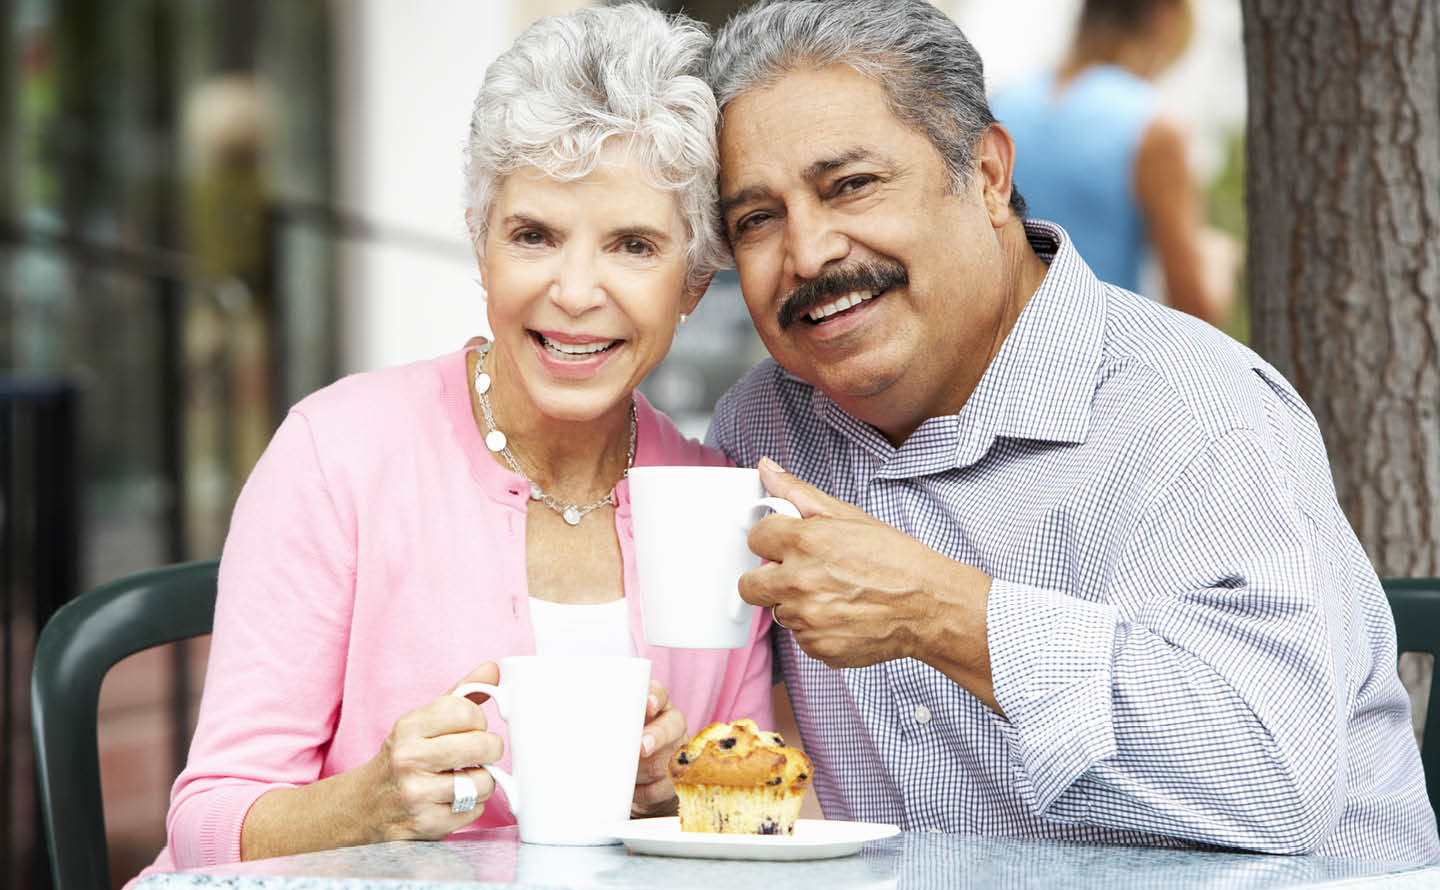 Senior couple enjoying coffee and muffins outdoors.